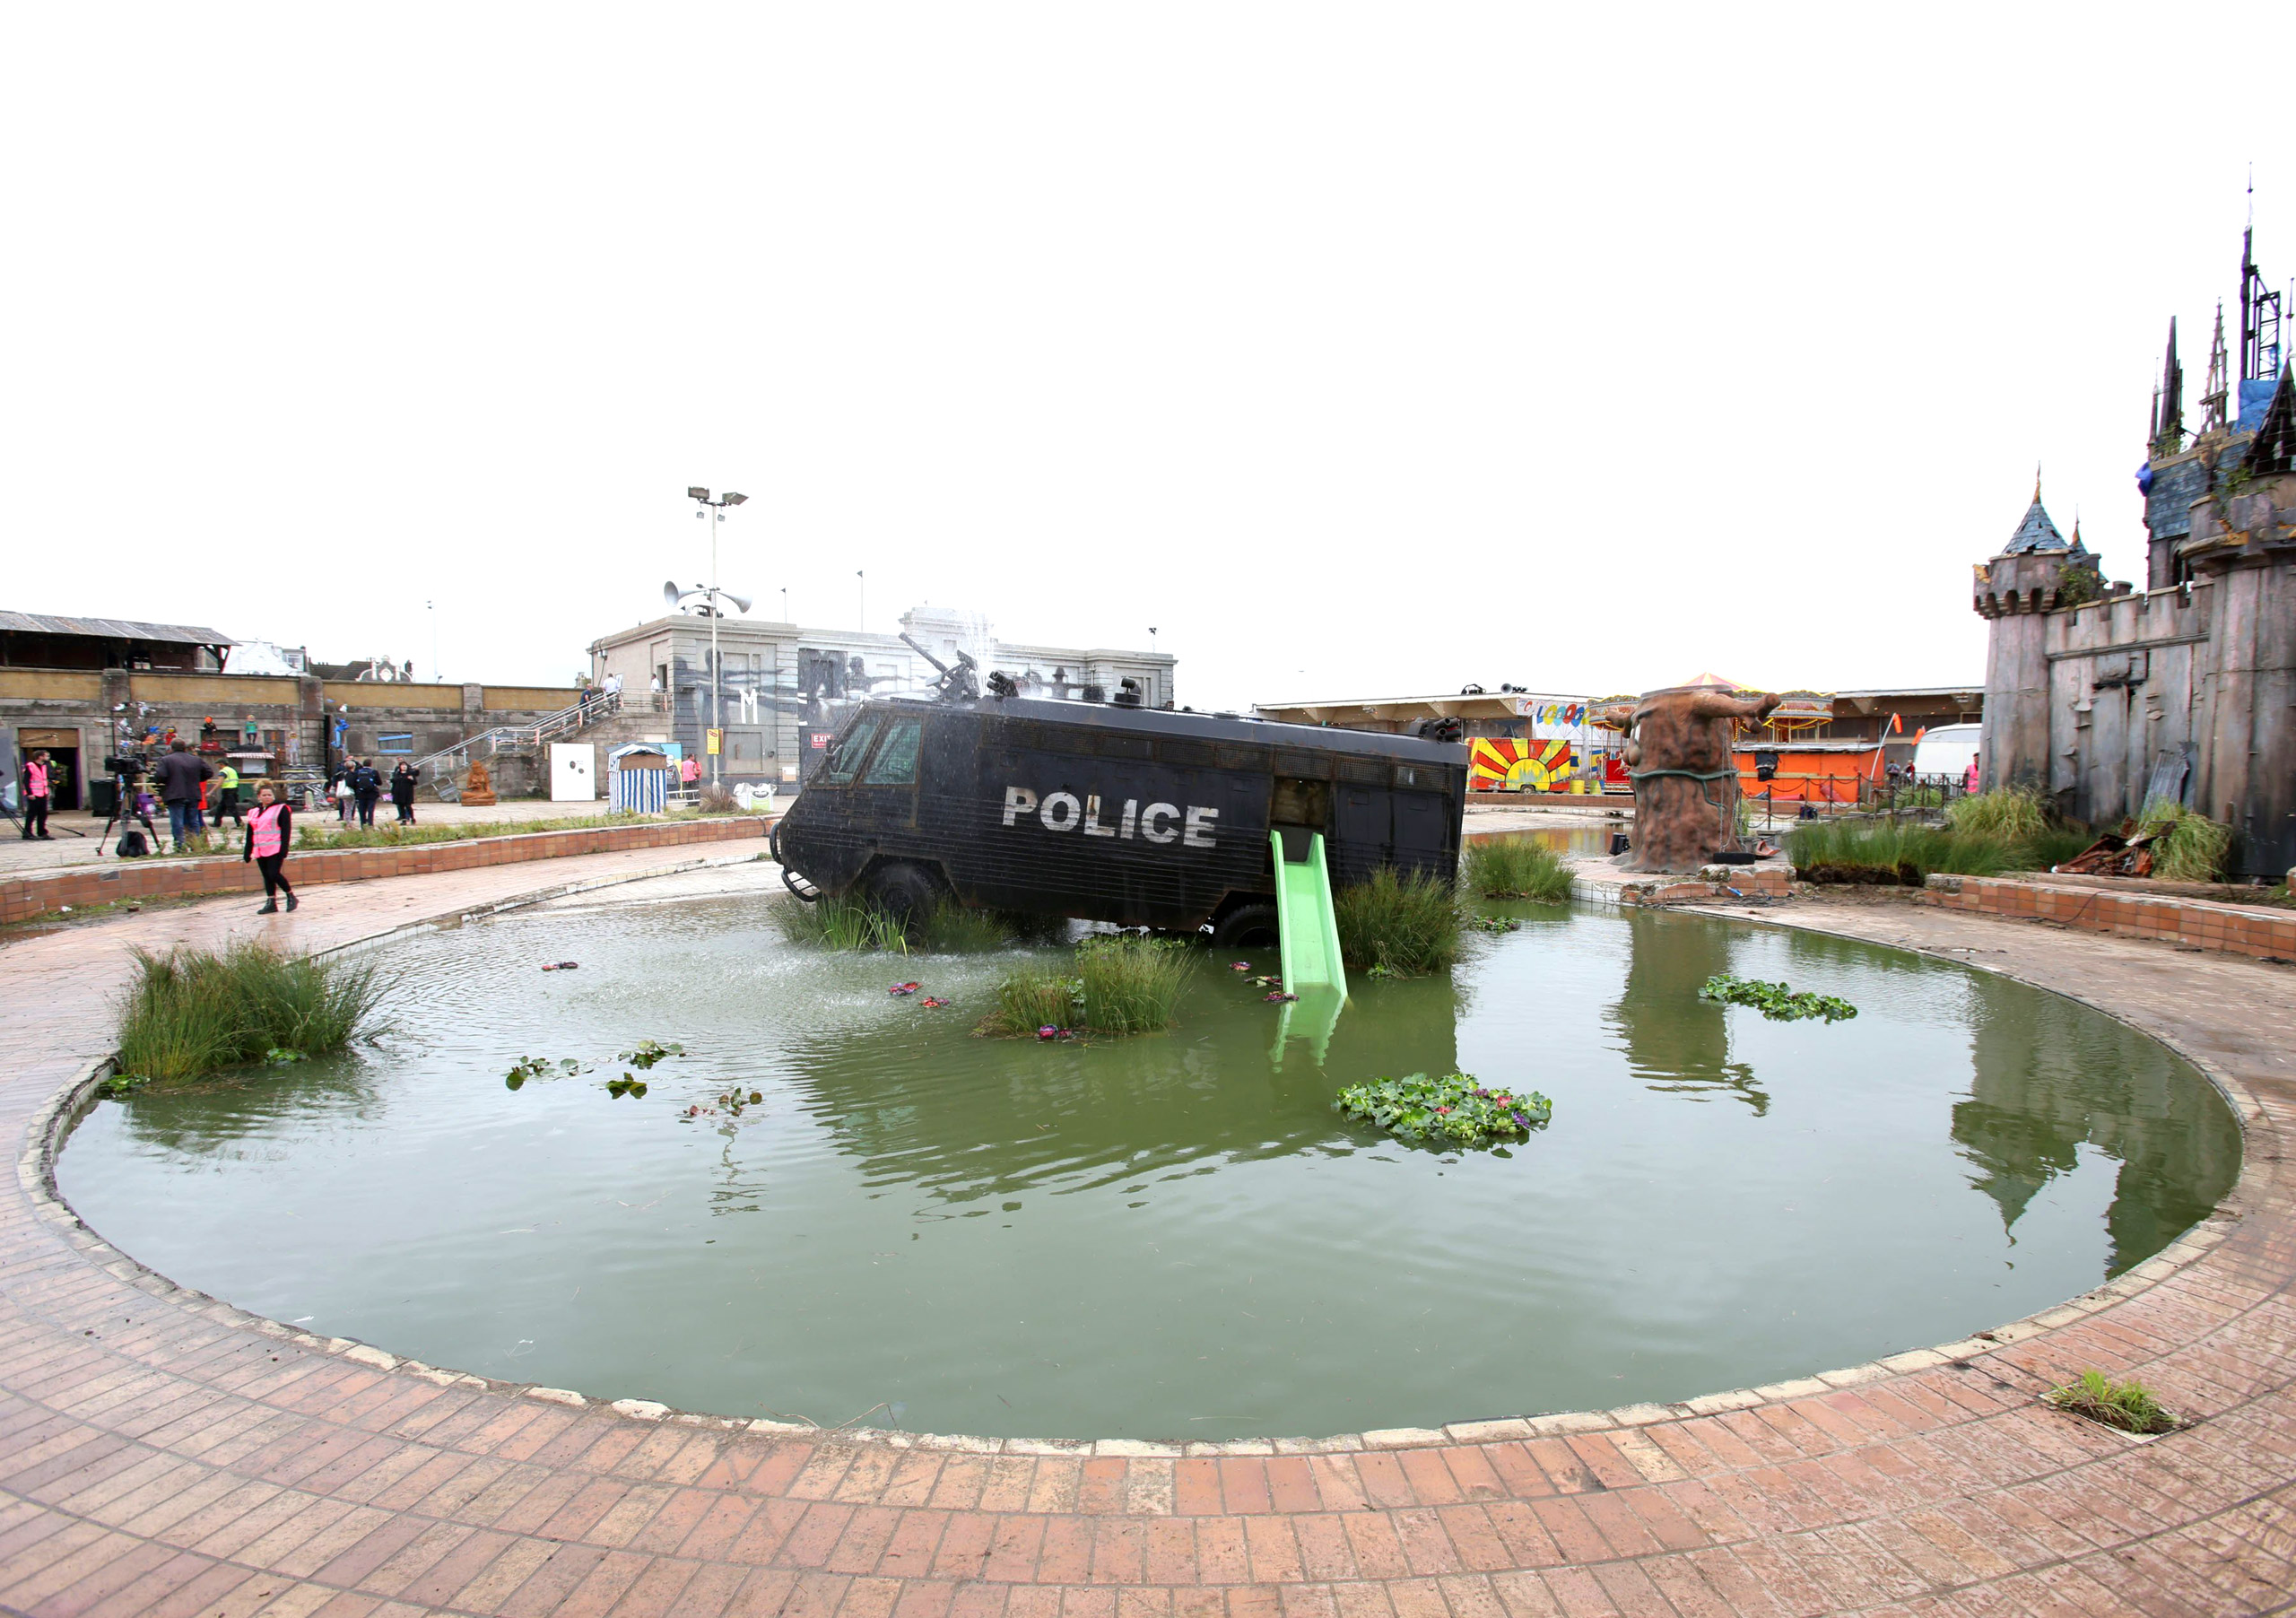 An armored police riot van built to serve on the streets of Northern Ireland in Water Canon Creek.